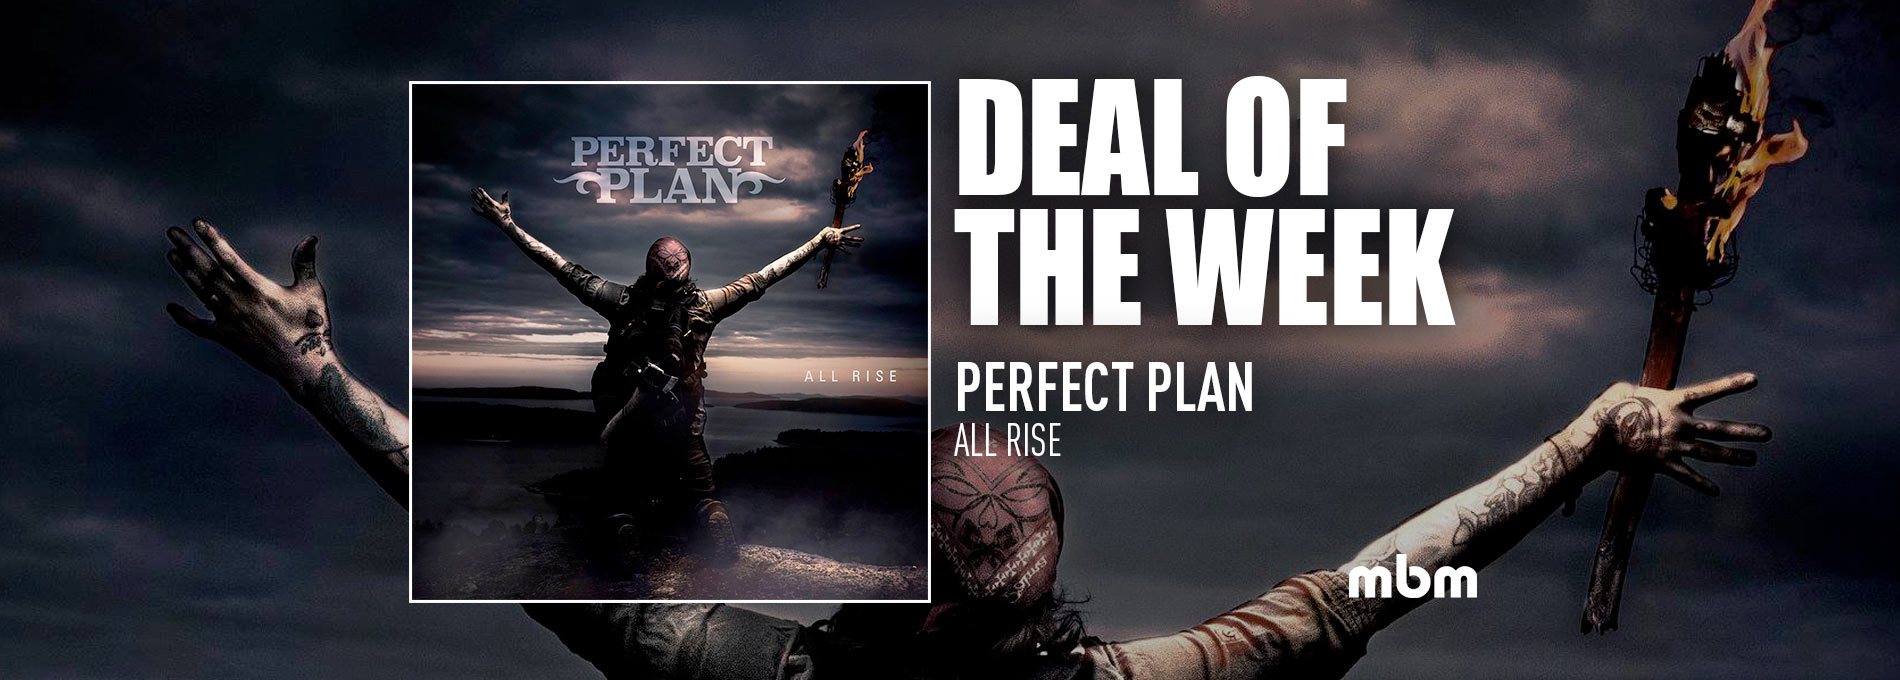 Deal Of The Week: PERFECT PLAN - All Rise